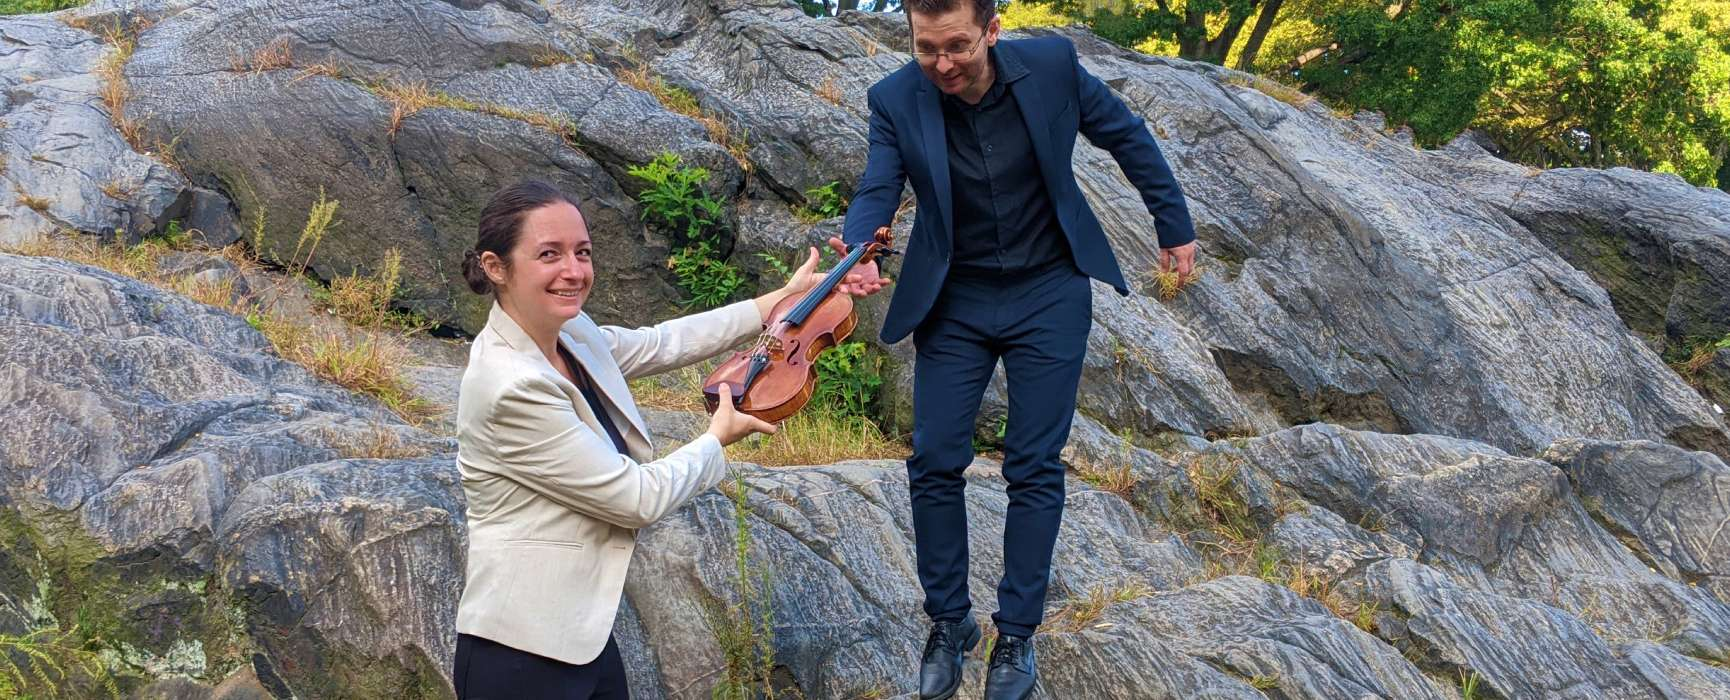 Image of violinist Alexandrina Boyanova and pianist Peter Fancovic in front of rocks.